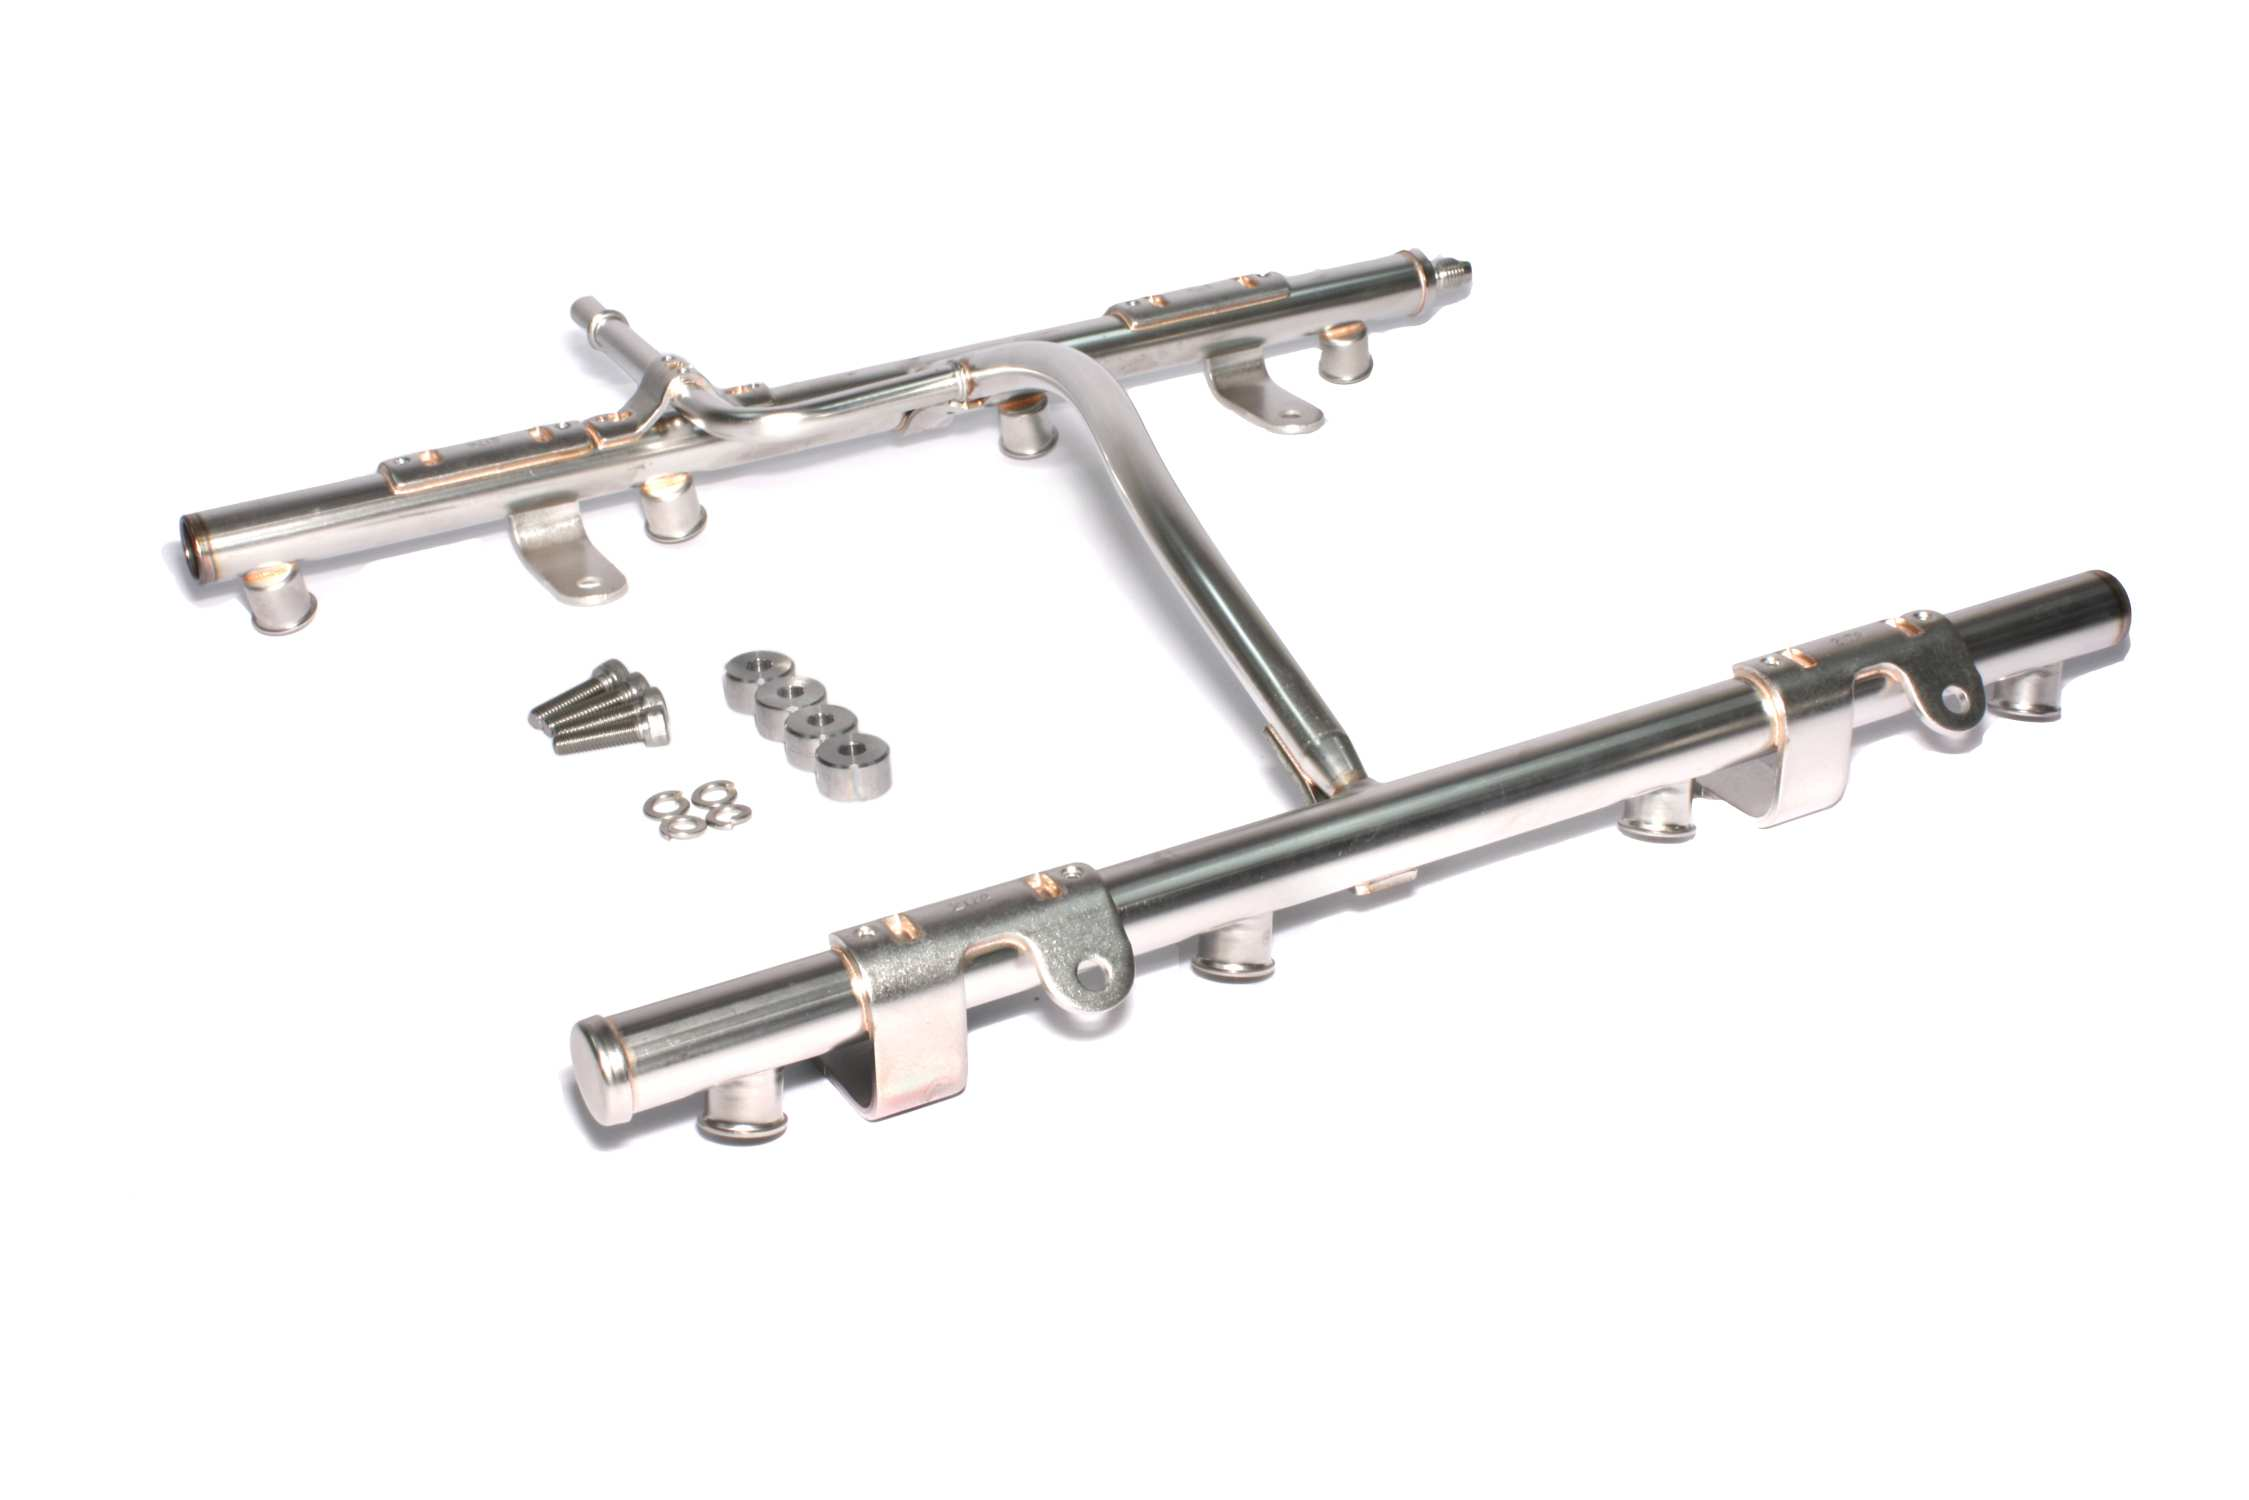 Comp Cams 146021-KIT Oem Style Fuel Rail Kit For Ls1/ls6